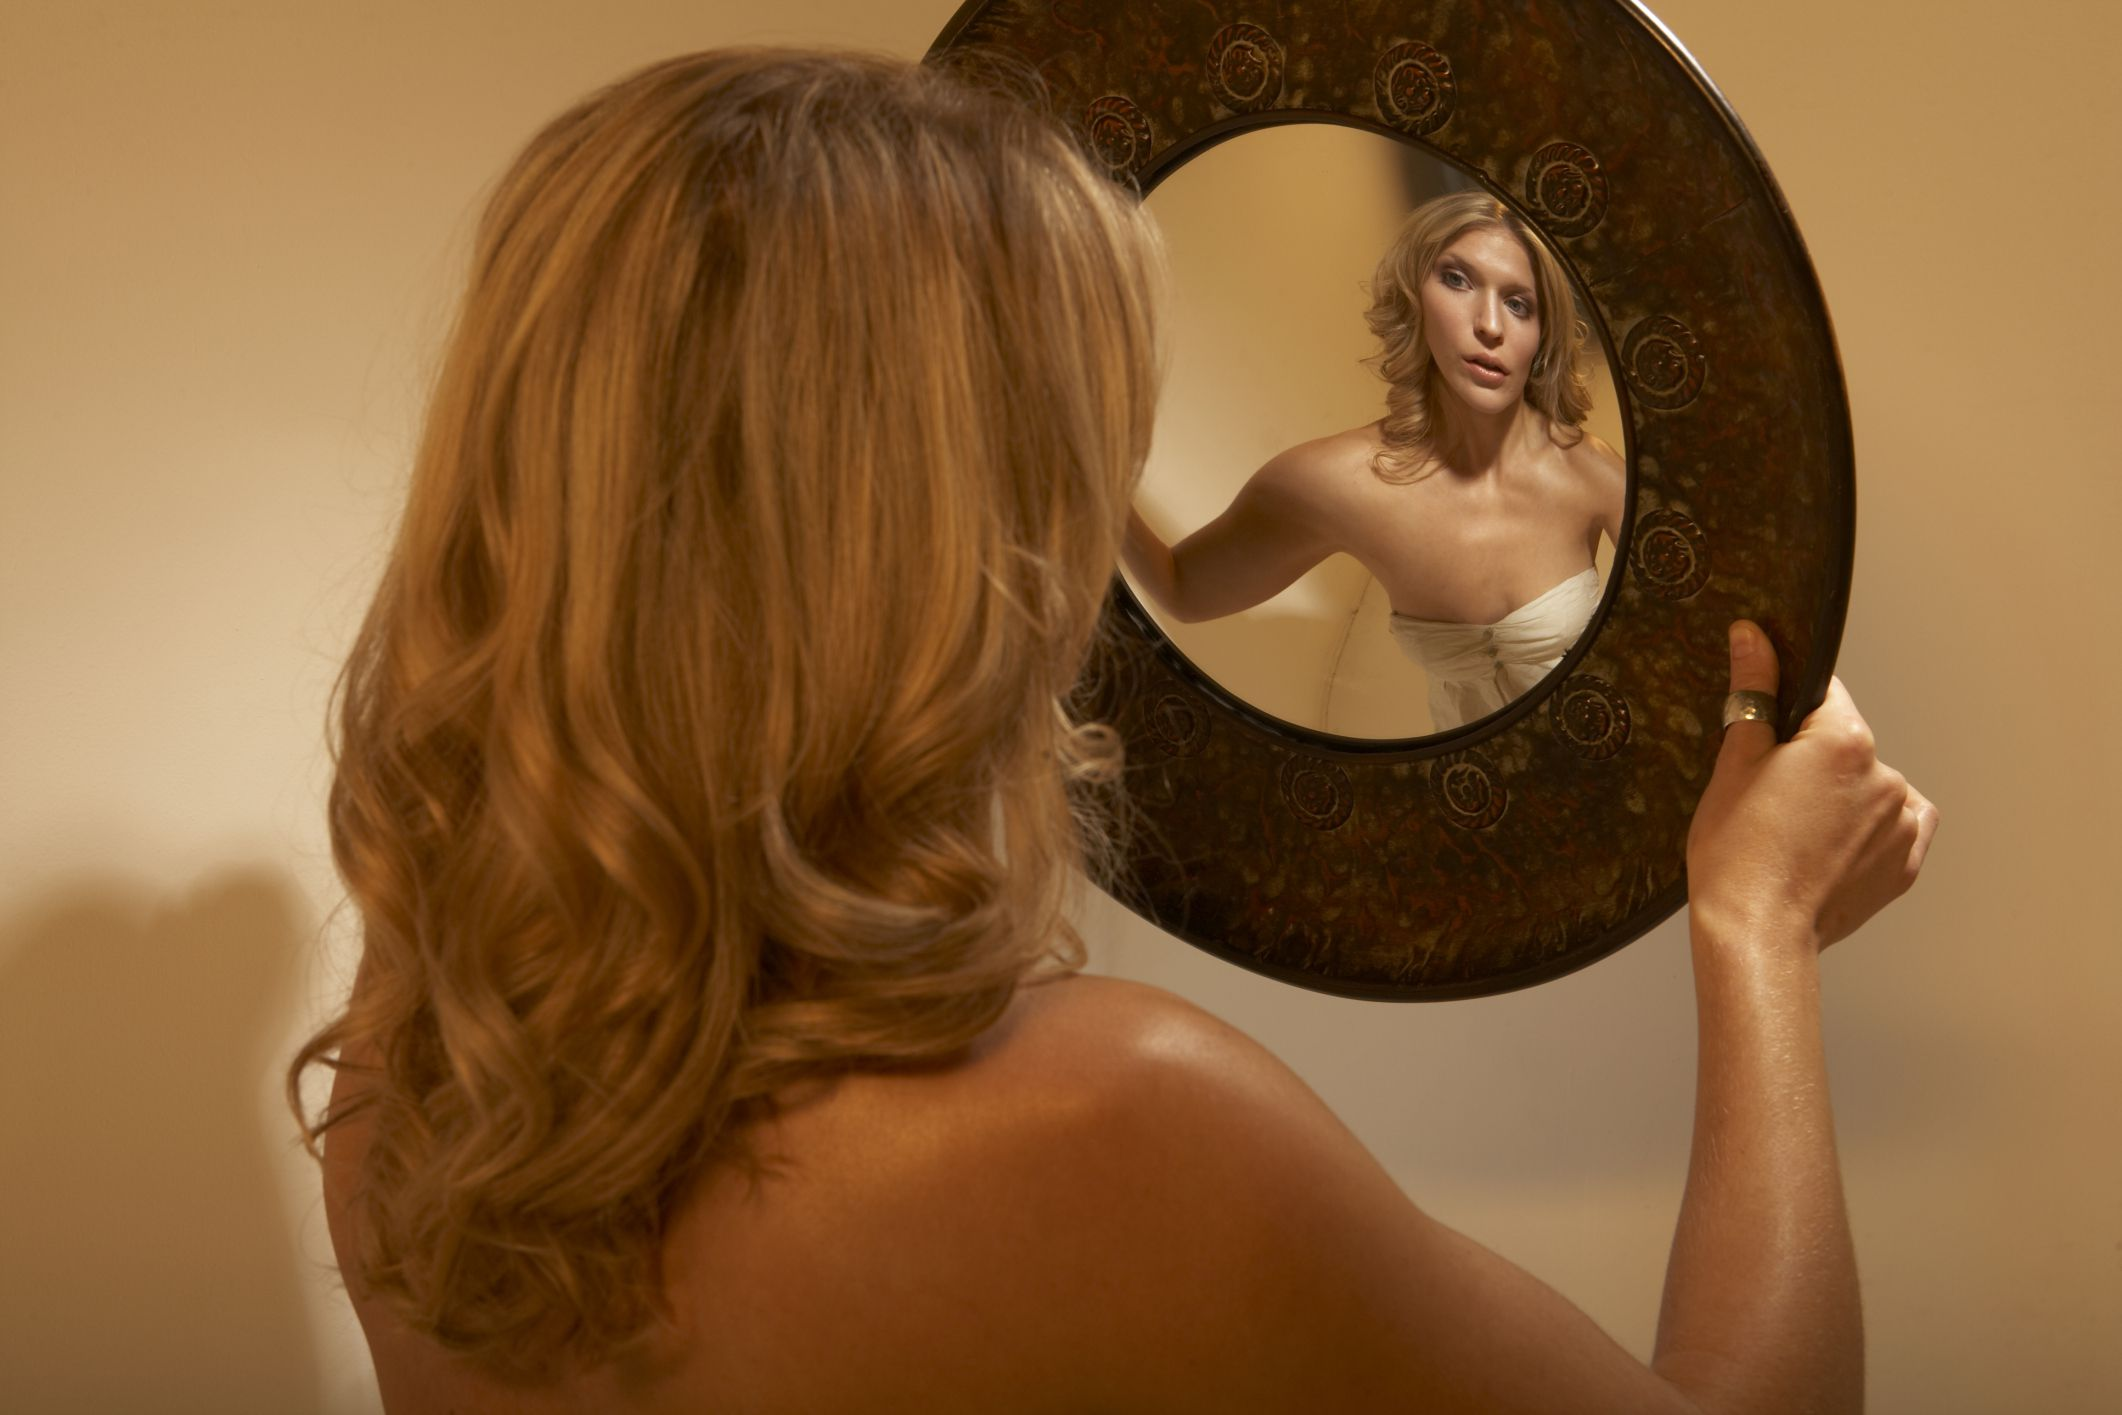 How Do I Deal with My Girlfriends Body Dysmorphic Disorder - Paperblog